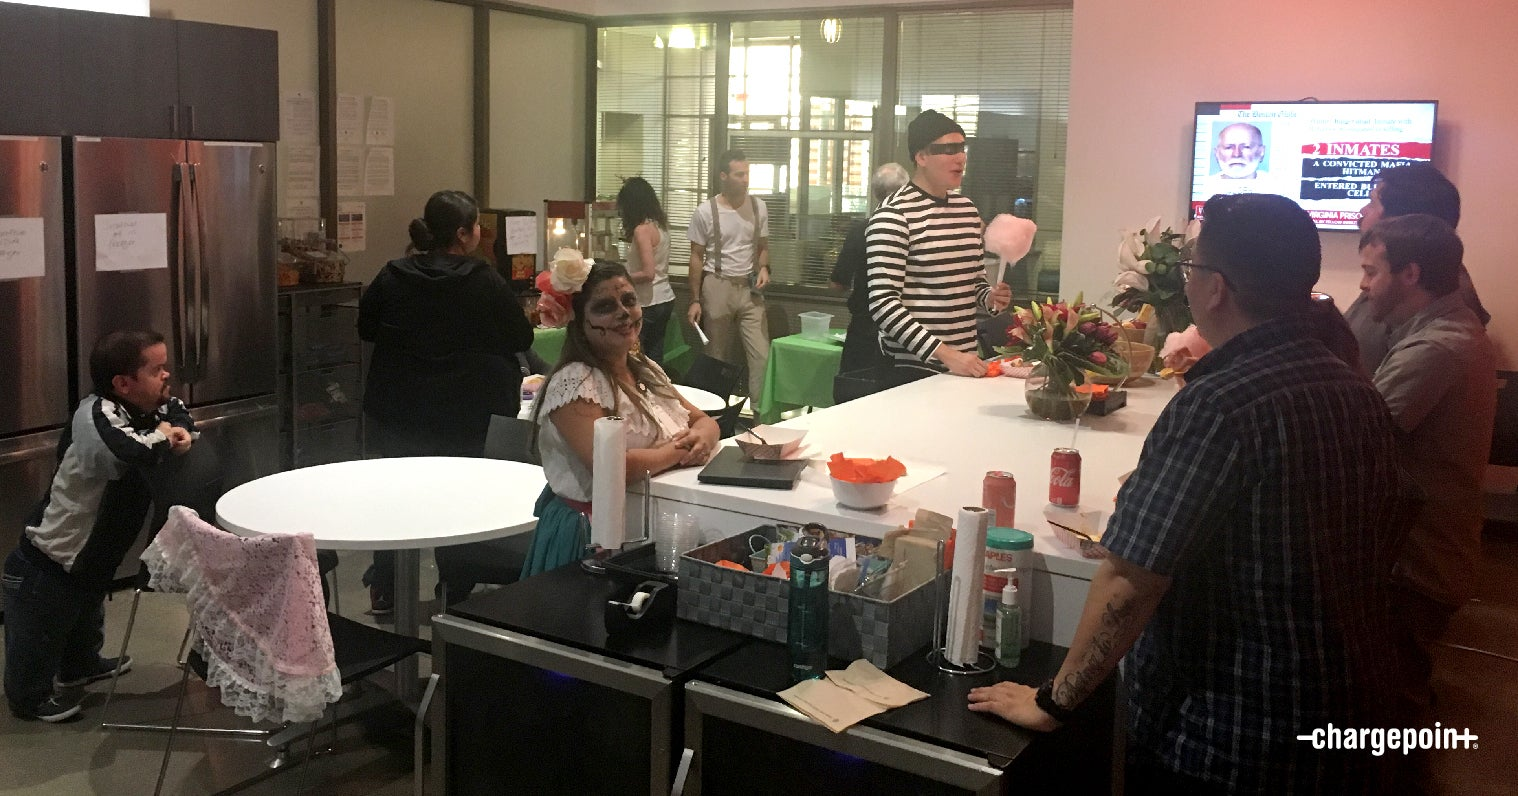 On Halloween, meetings are a bit different at ChargePoint